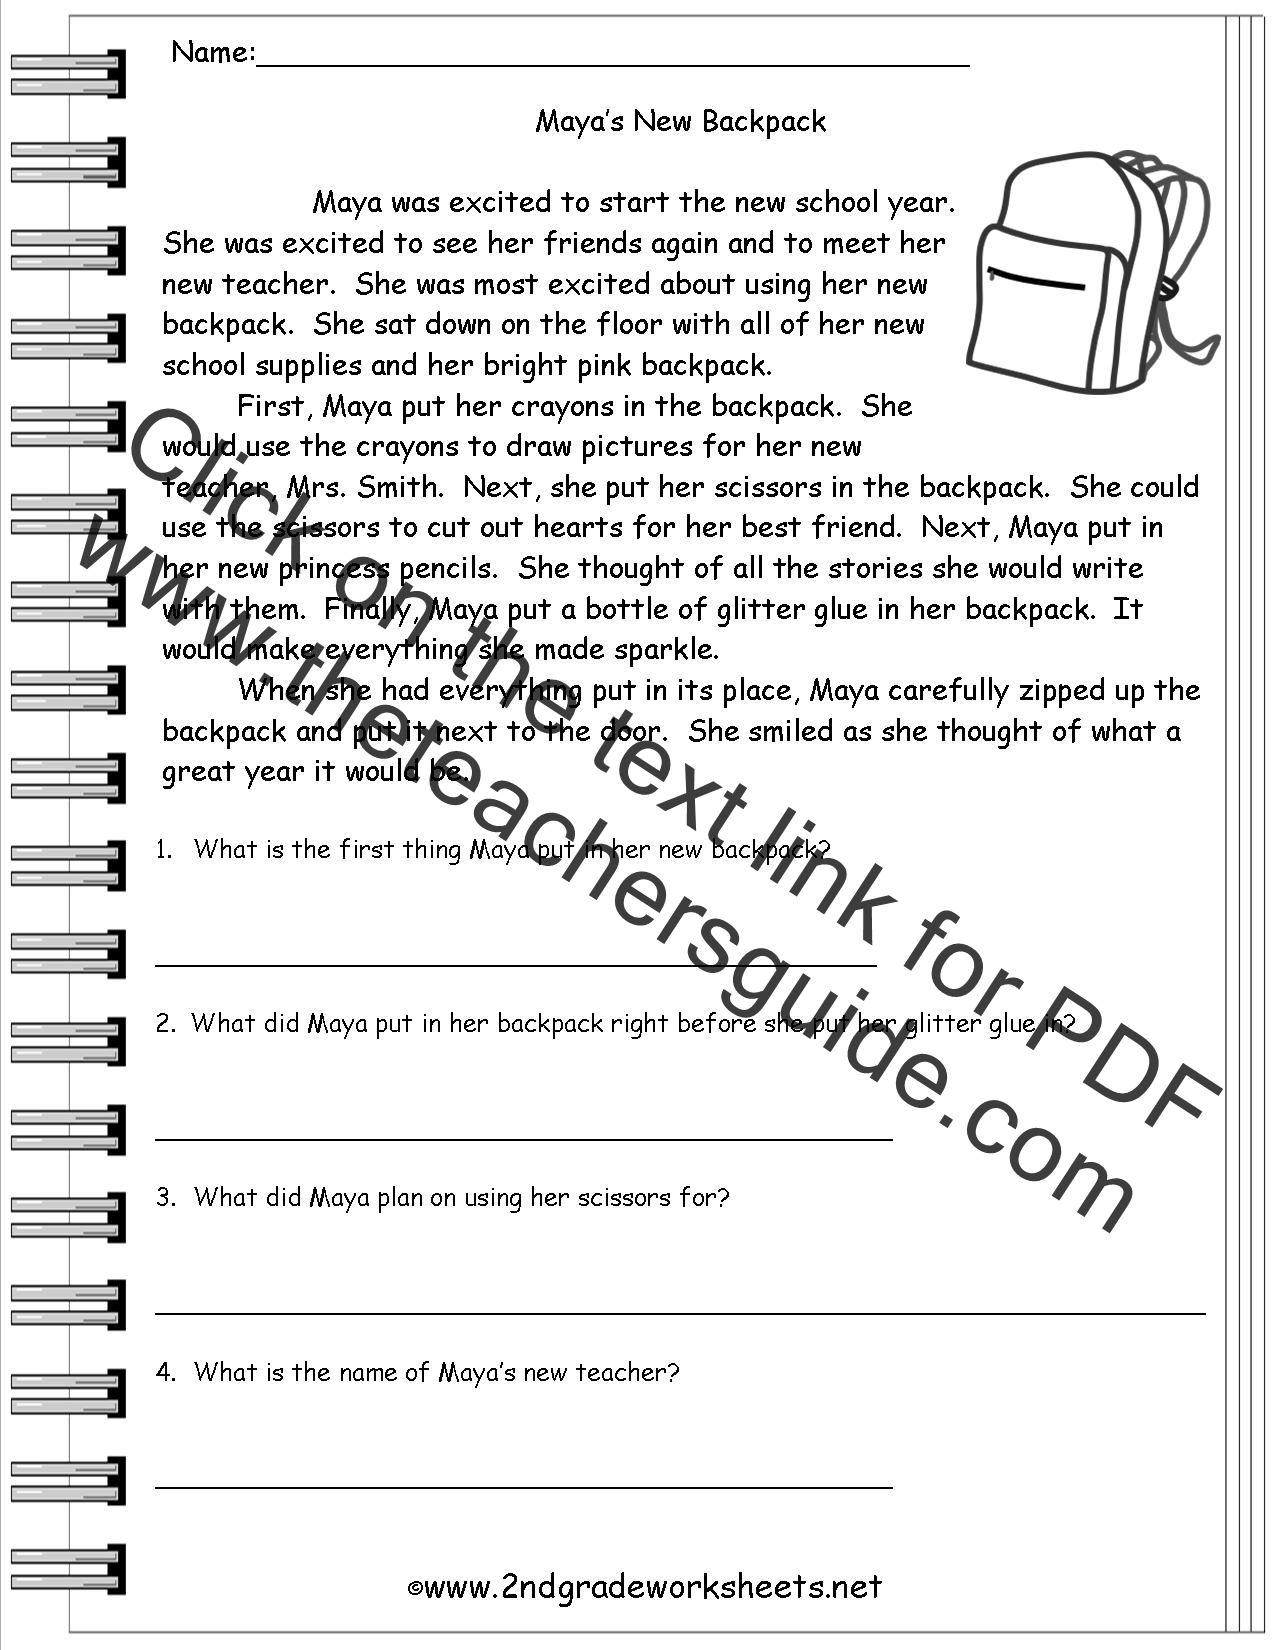 Worksheet 3rd Grade Reading Passage reading worksheeets literature worksheets